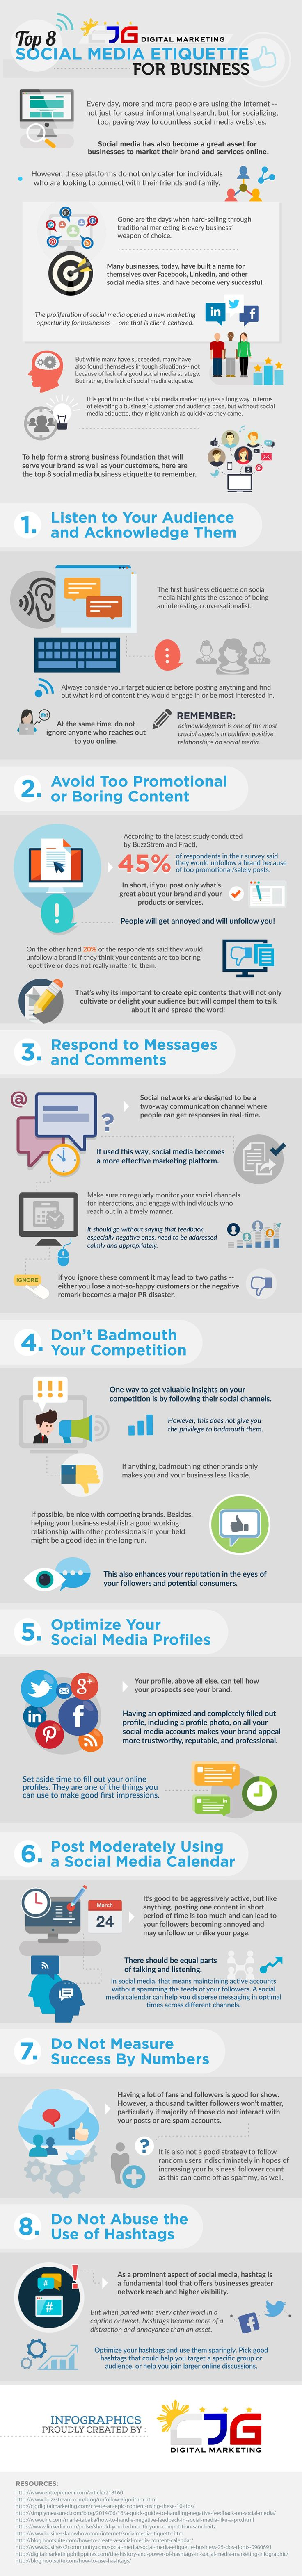 The Top 8 Social Media Etiquette for Business (Infographic) | Jomer Gregorio | LinkedIn